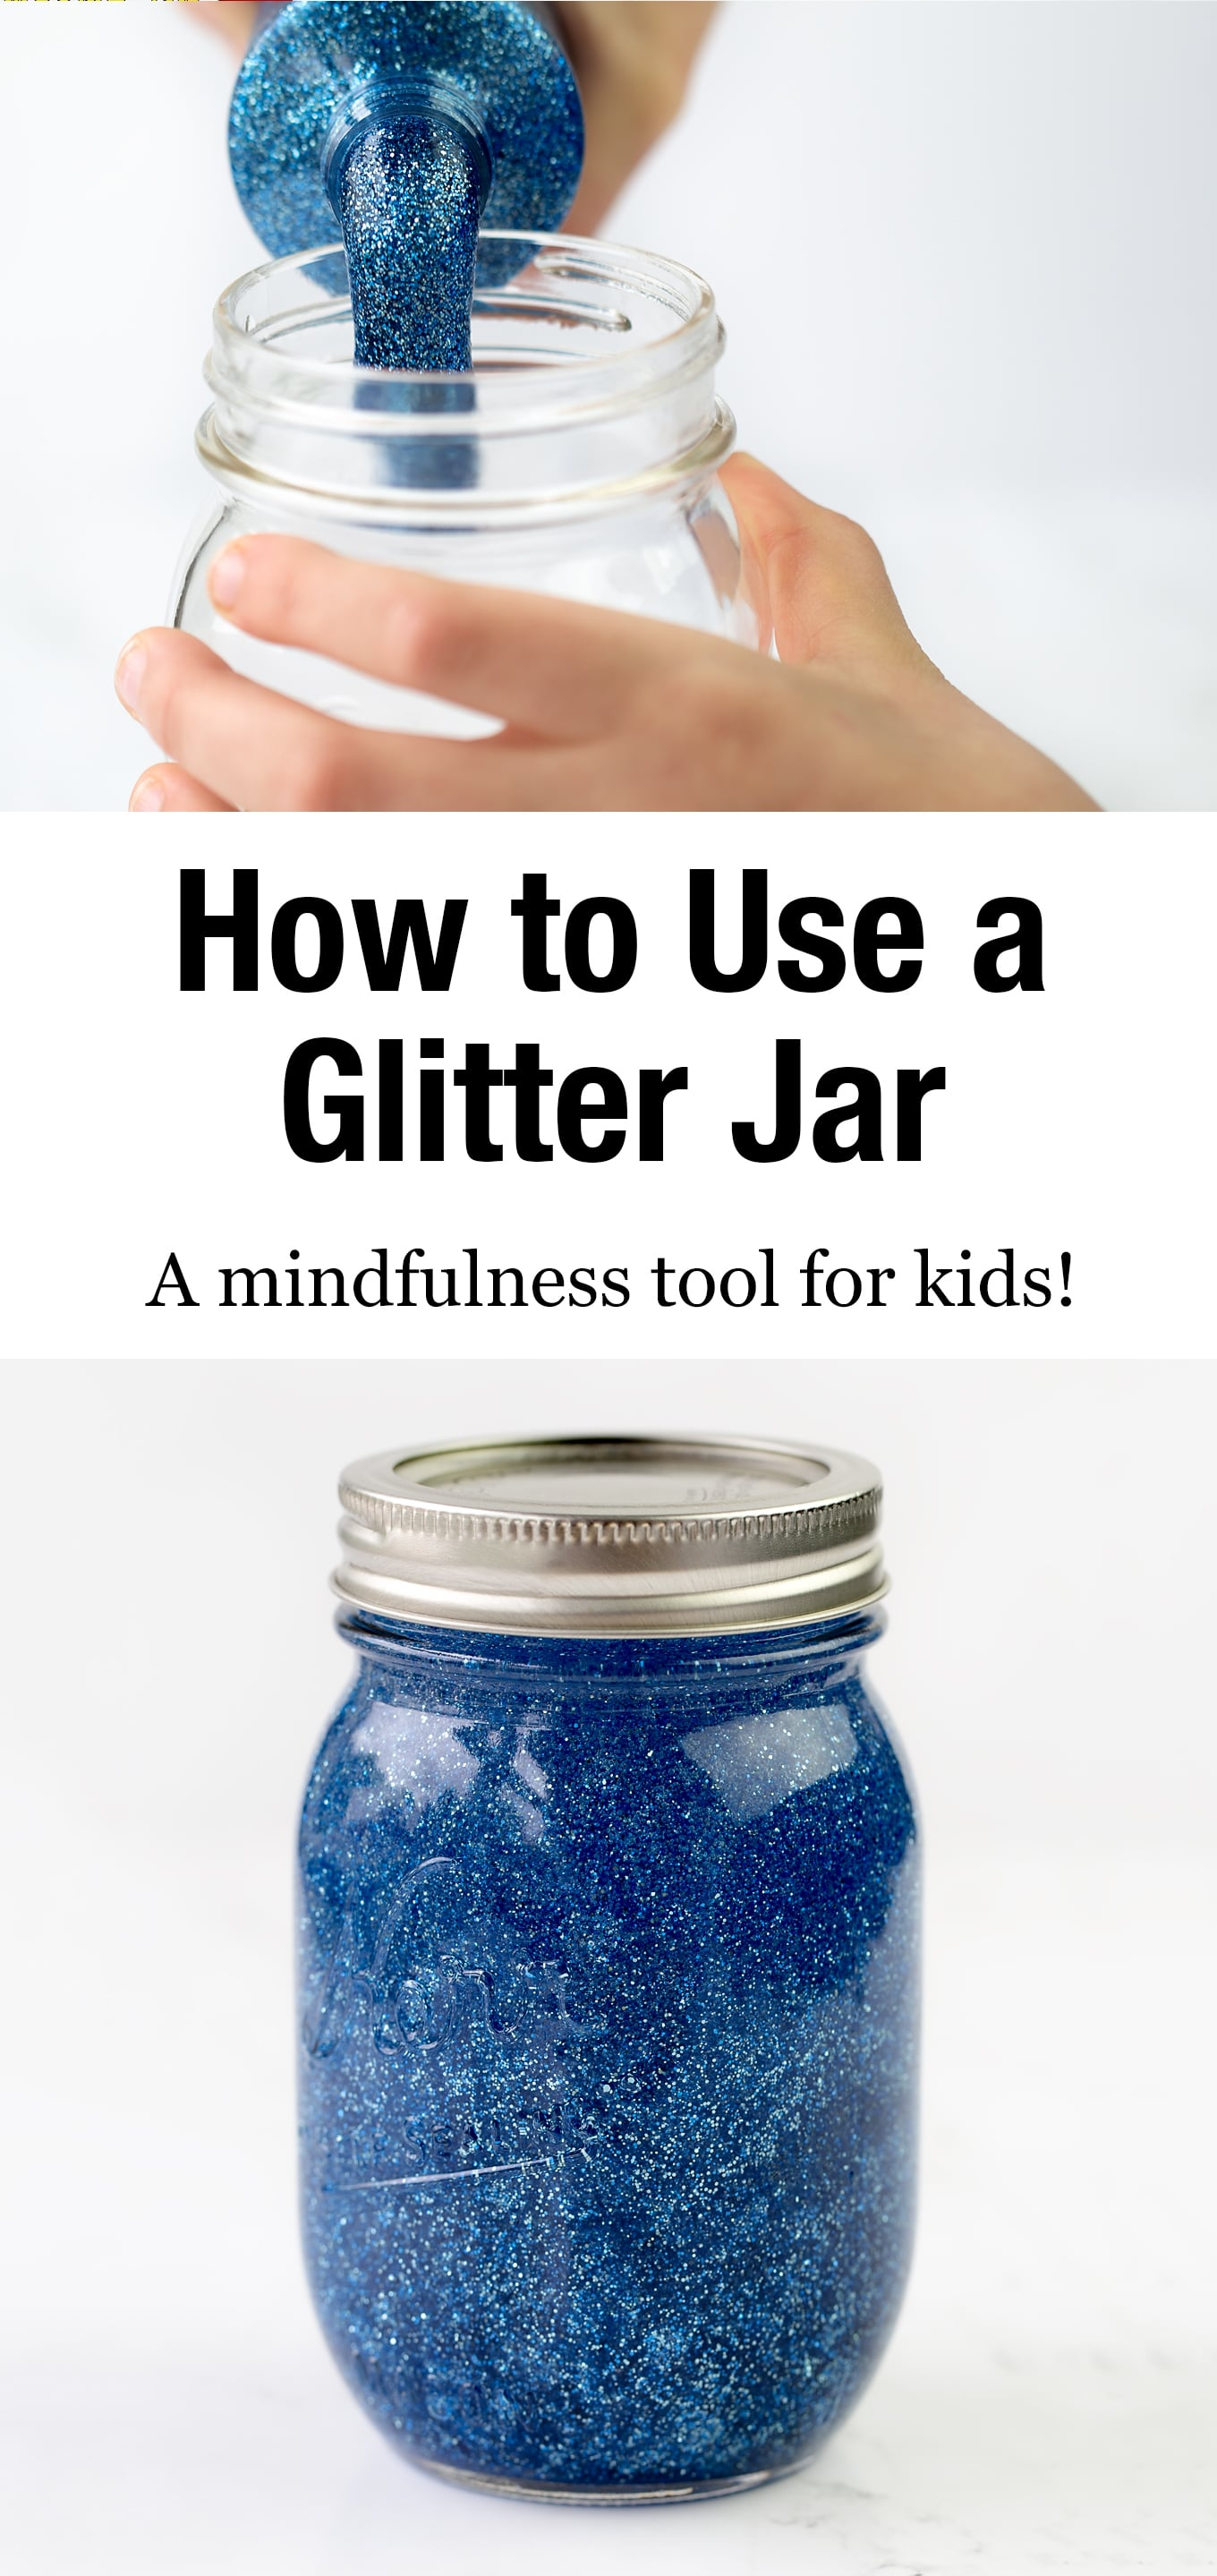 How A Glitter Jar Can Help Kids Control Their Feelings